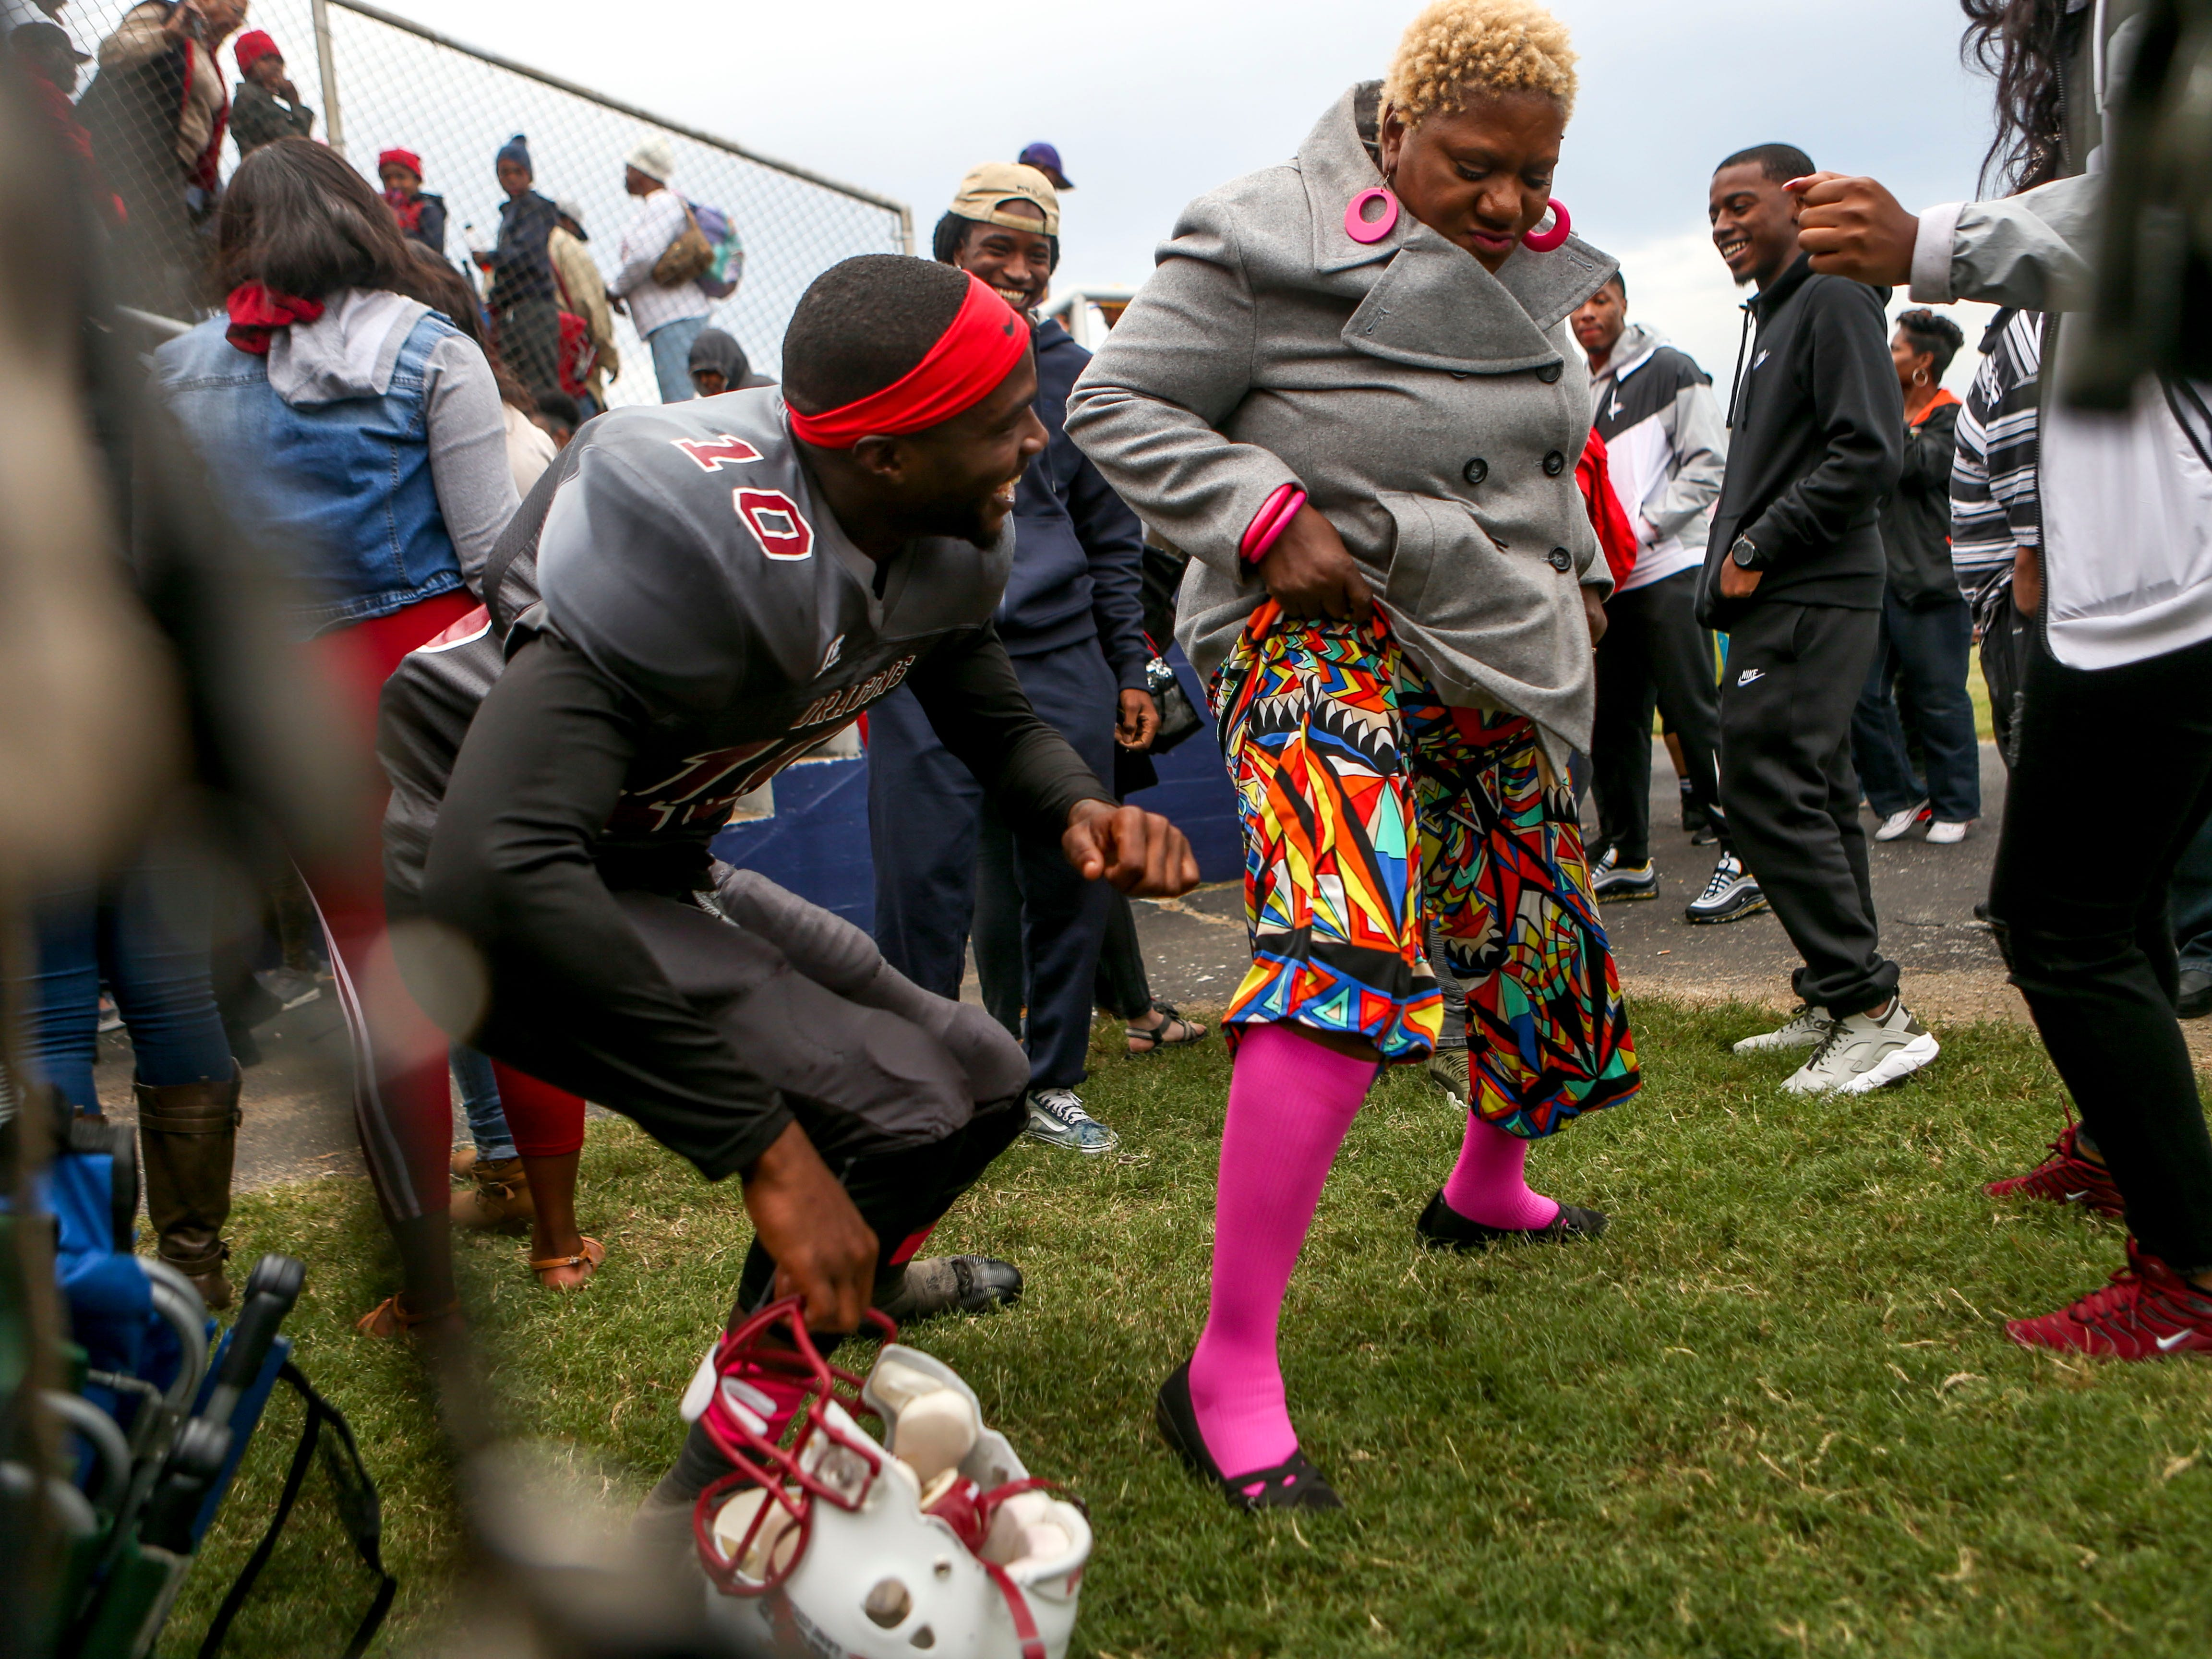 Rose Donahue, right, dances with her grandson Terrance Kinnie (10) after Lane College won their homecoming game at T.R. White Sportsplex in Jackson, Tenn., on Saturday, Oct. 13, 2018.